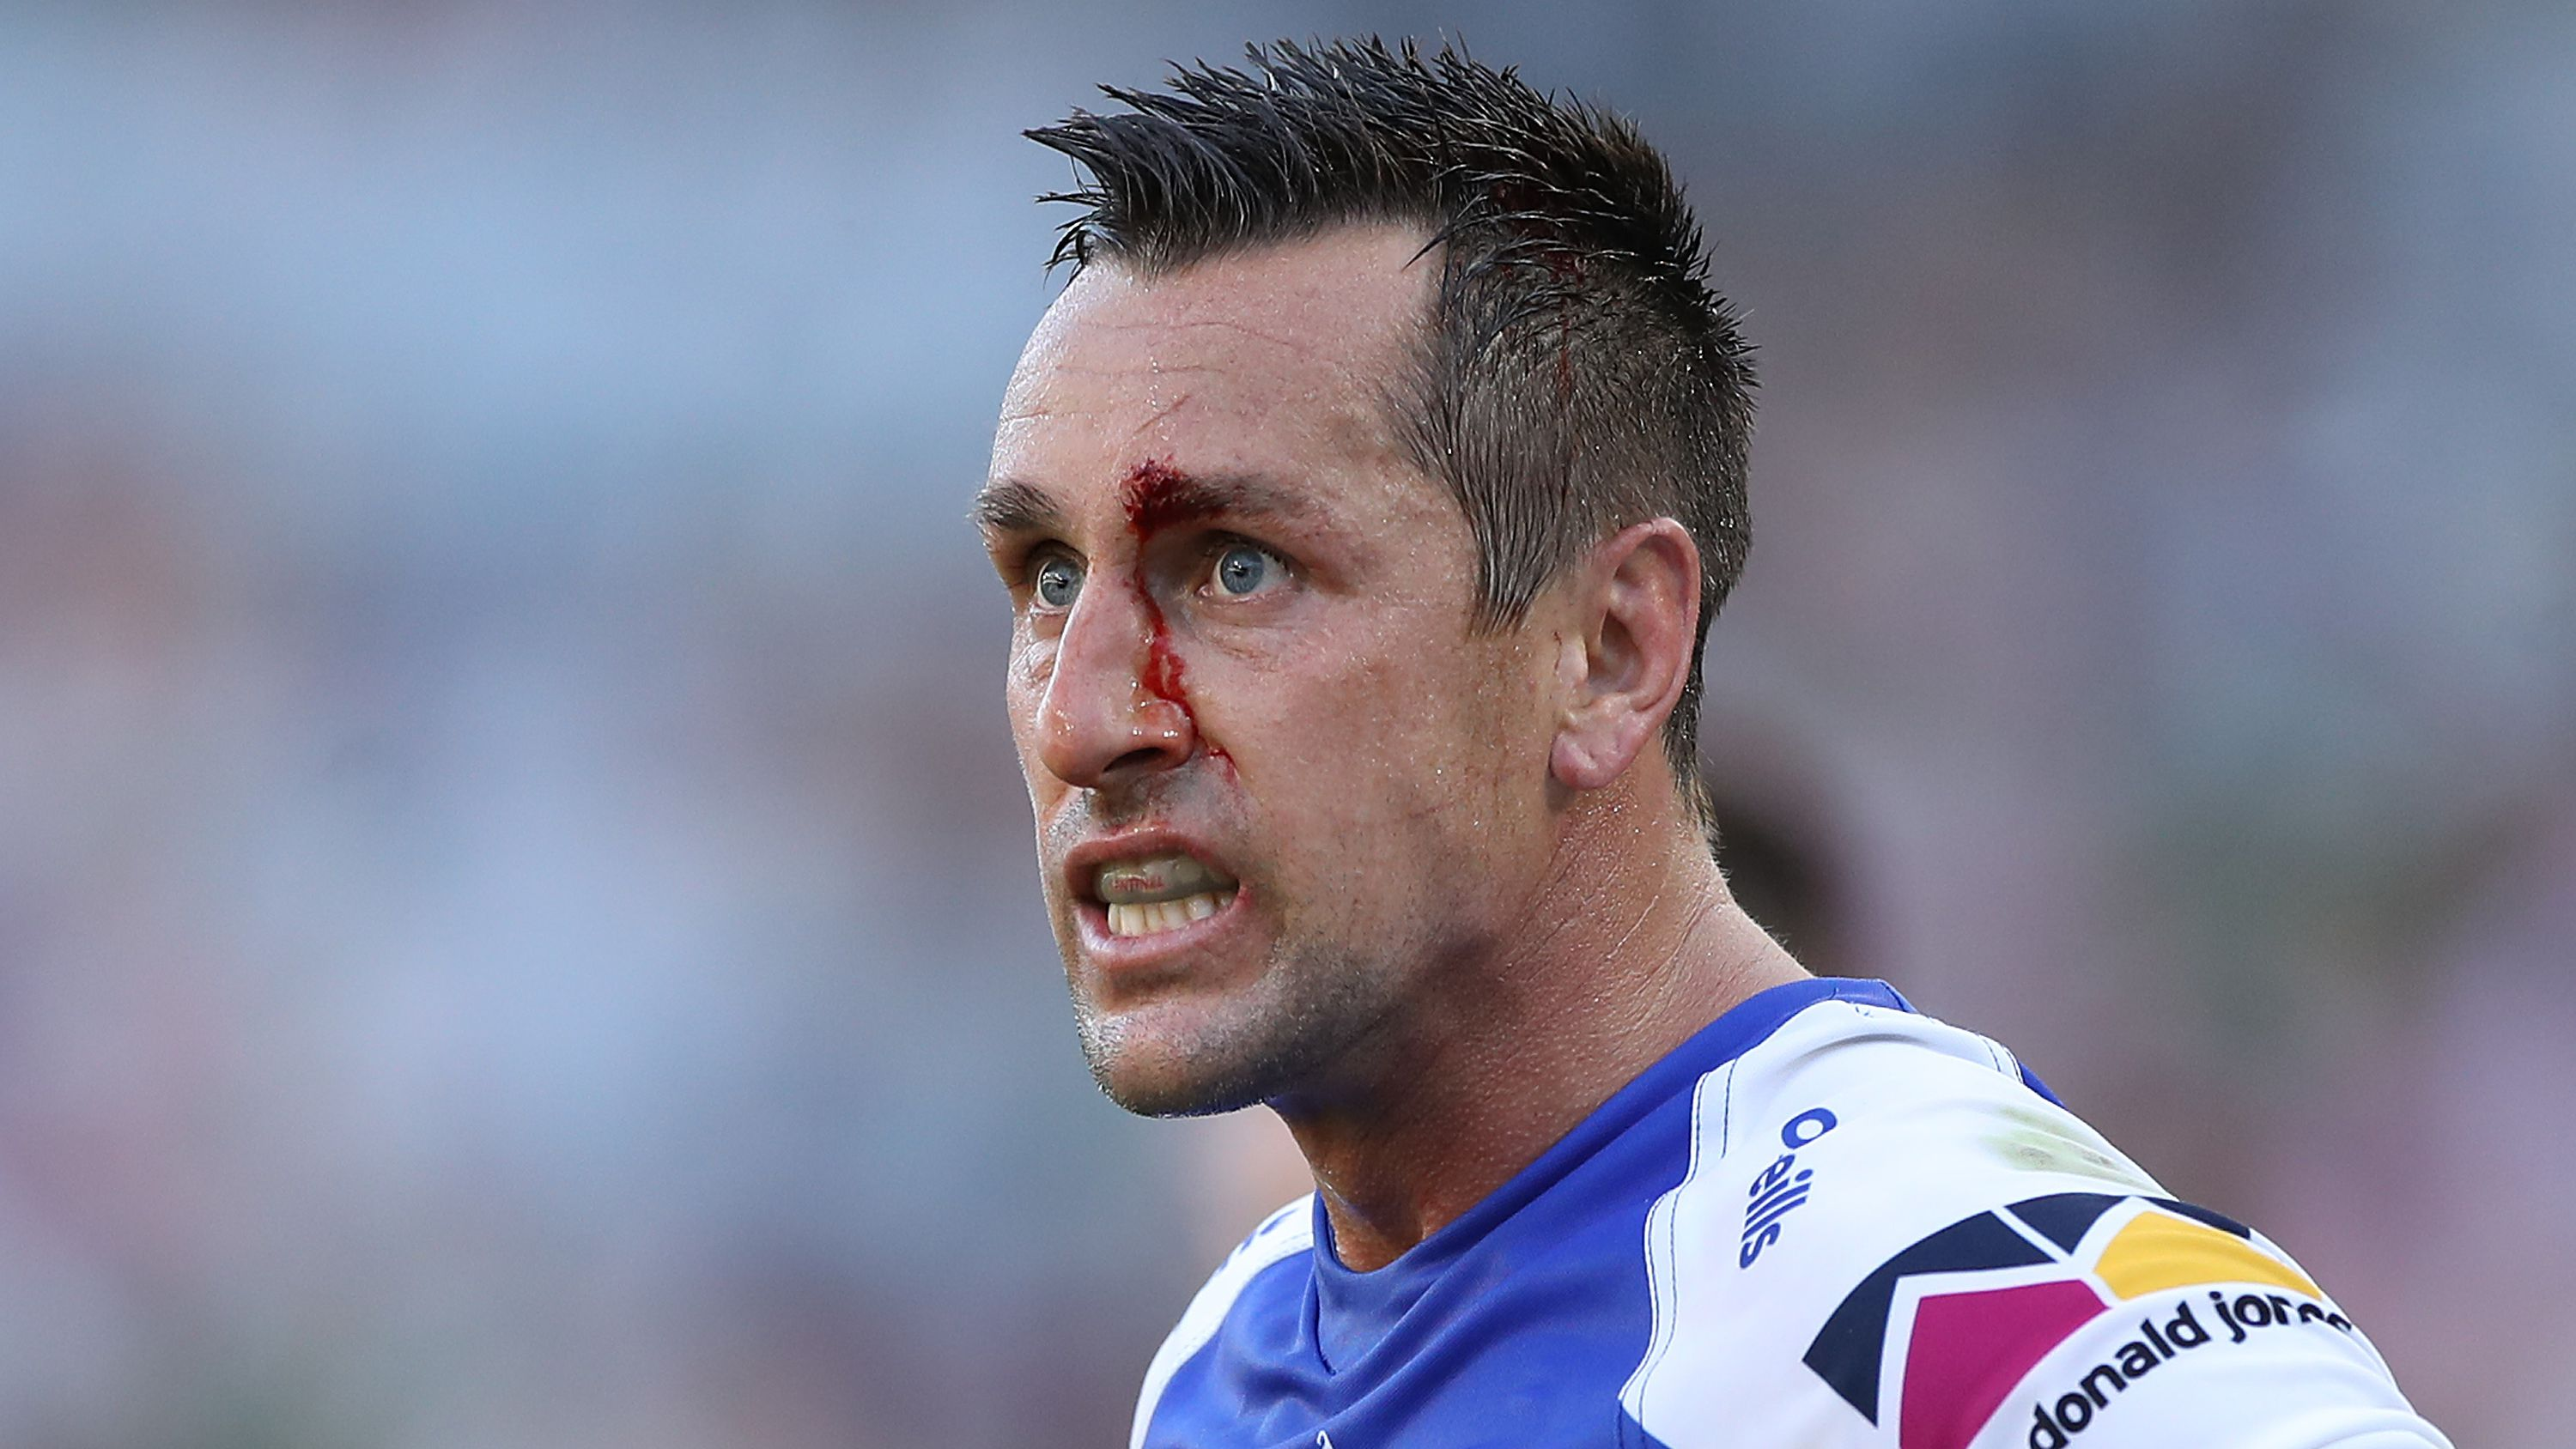 EXCLUSIVE: Connor Watson jumps to defence of Mitchell Pearce amid star halfback's tumultuous summer